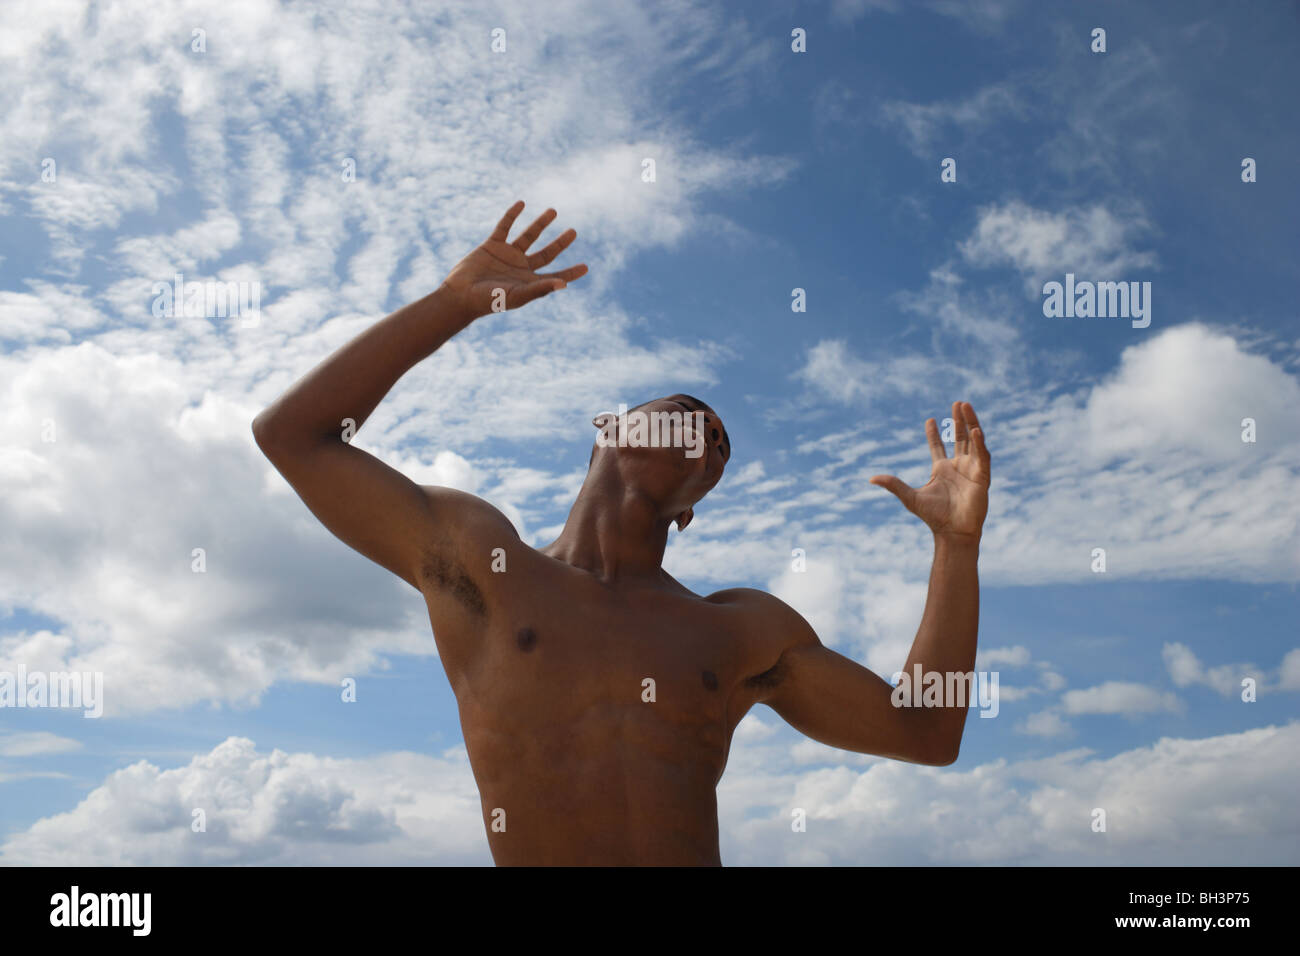 Young man dancing against a blue cloudy sky, smiling - Stock Image